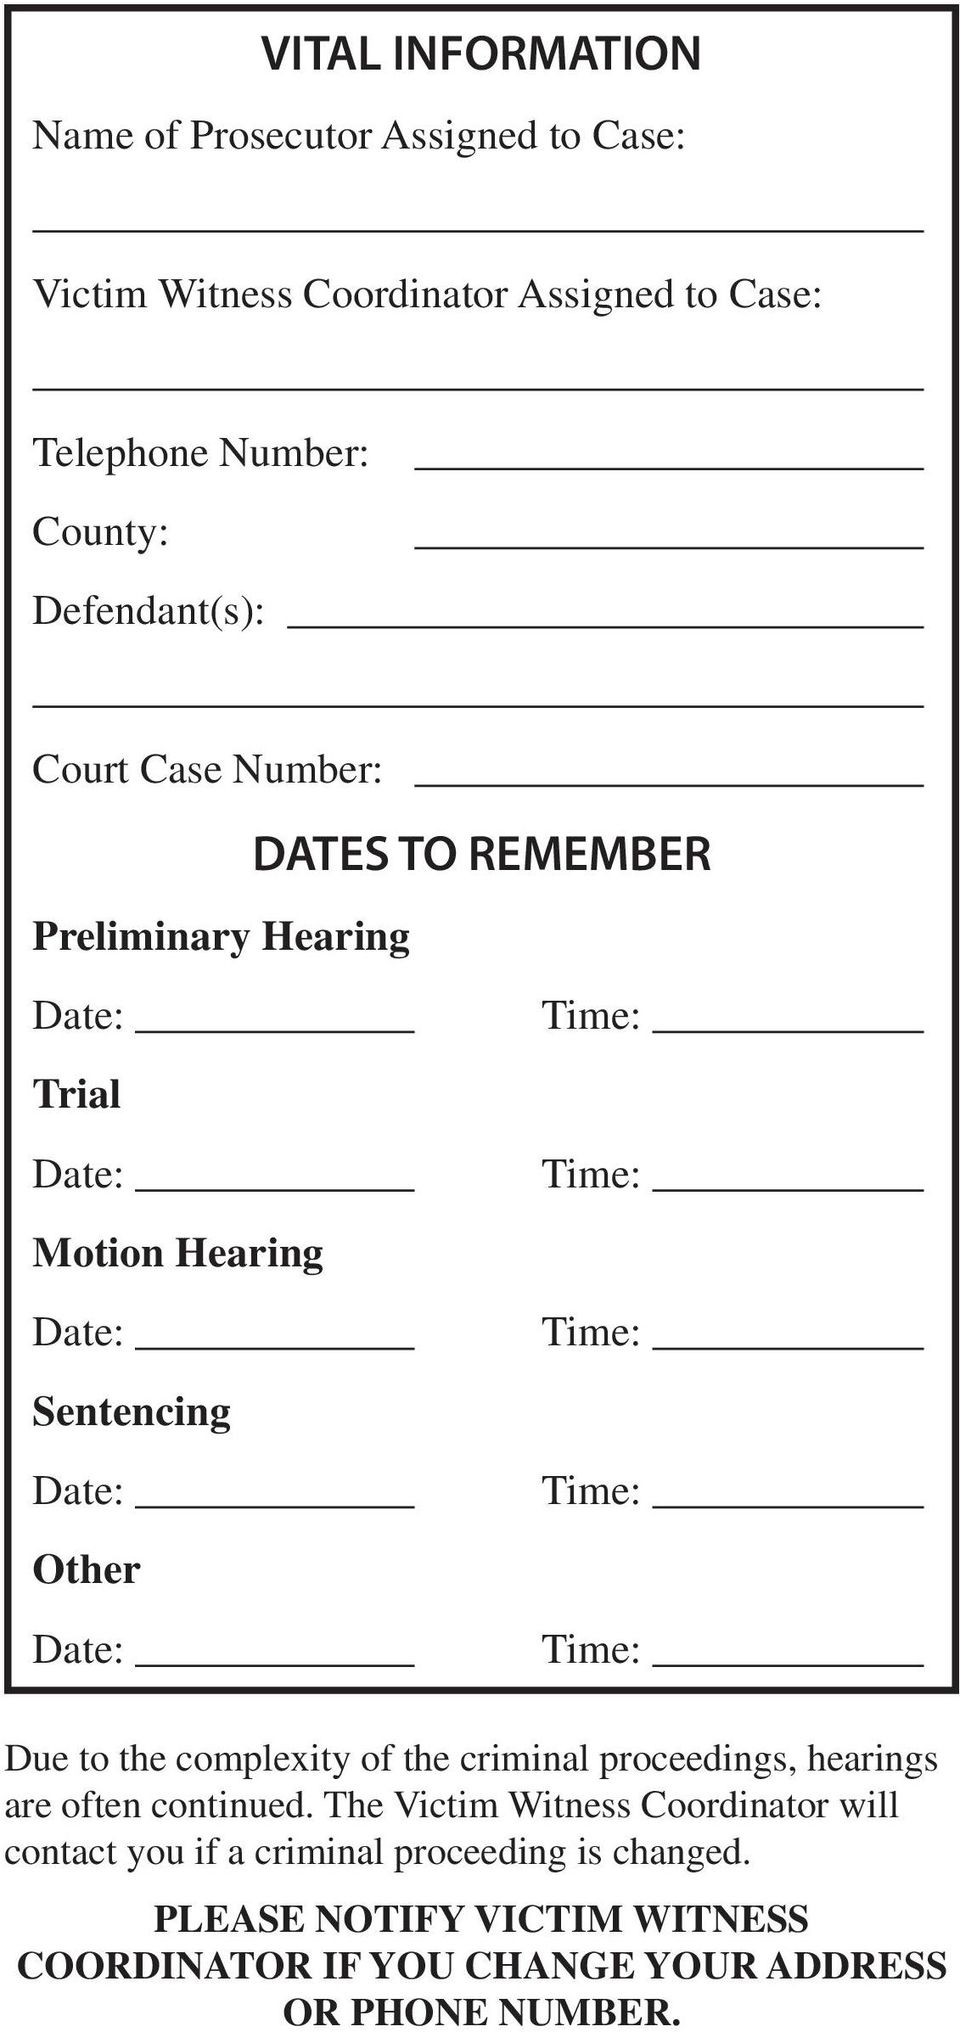 REMEMBER Time: Time: Time: Time: Time: Due to the complexity of the criminal proceedings, hearings are often continued.